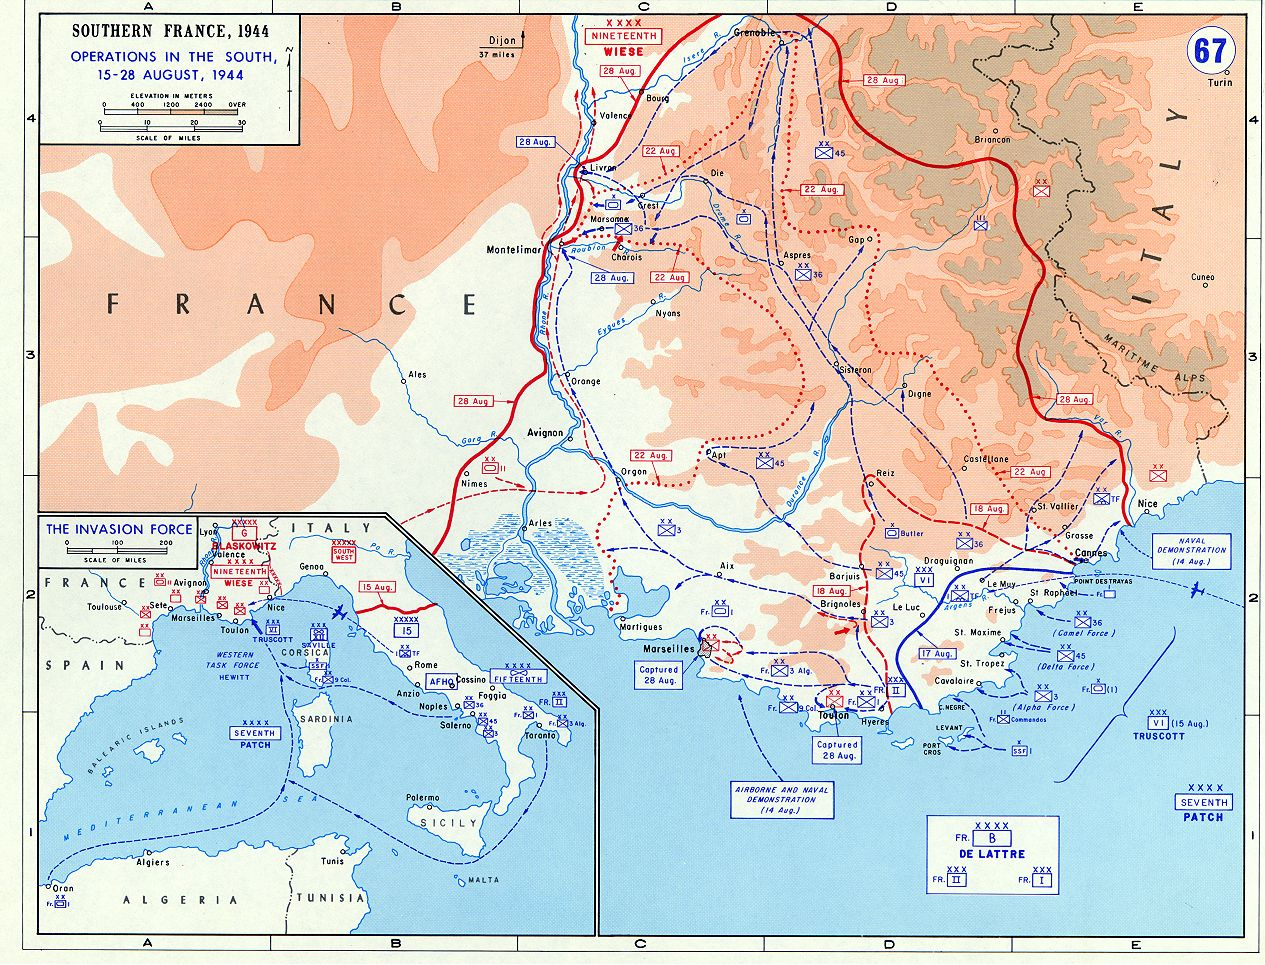 Map map of southern france during operation dragoon 15 28 aug 1944 map of southern france during operation dragoon 15 28 aug 1944 us military academy gumiabroncs Images